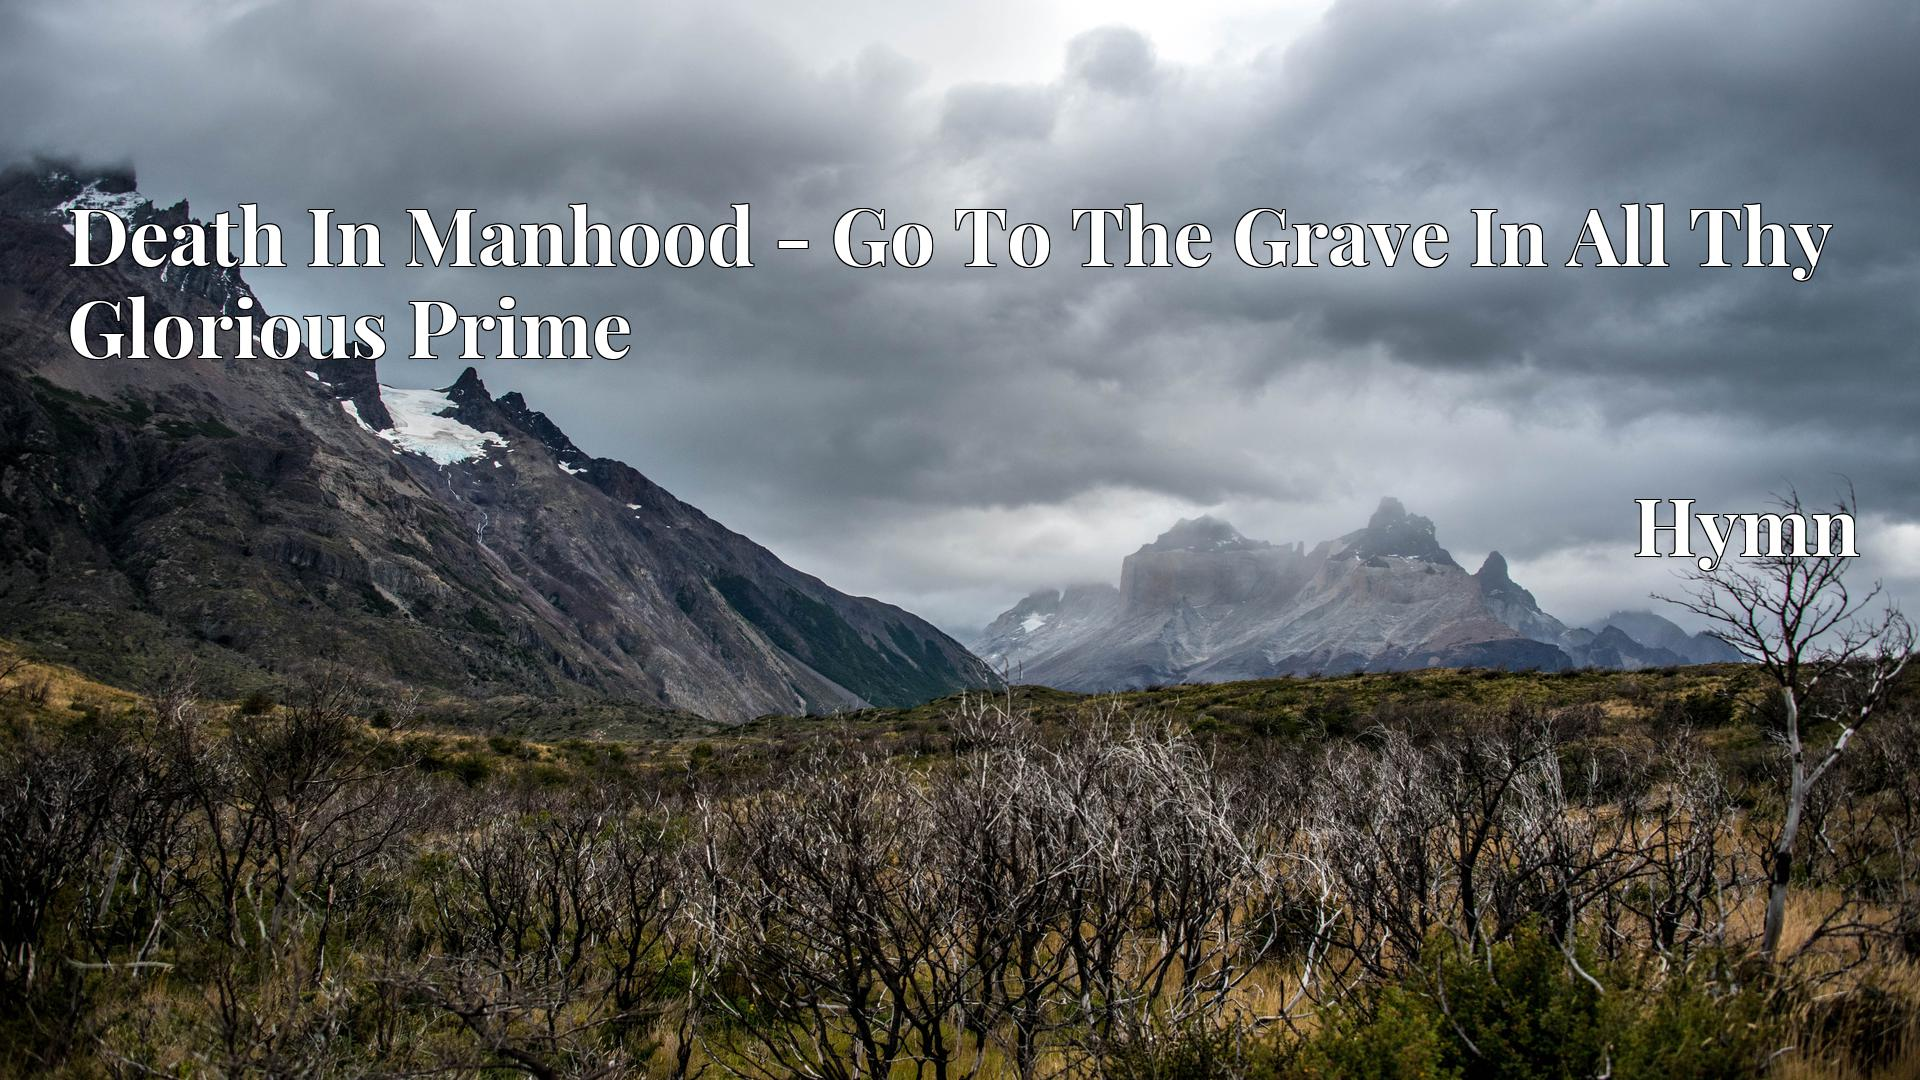 Death In Manhood - Go To The Grave In All Thy Glorious Prime - Hymn